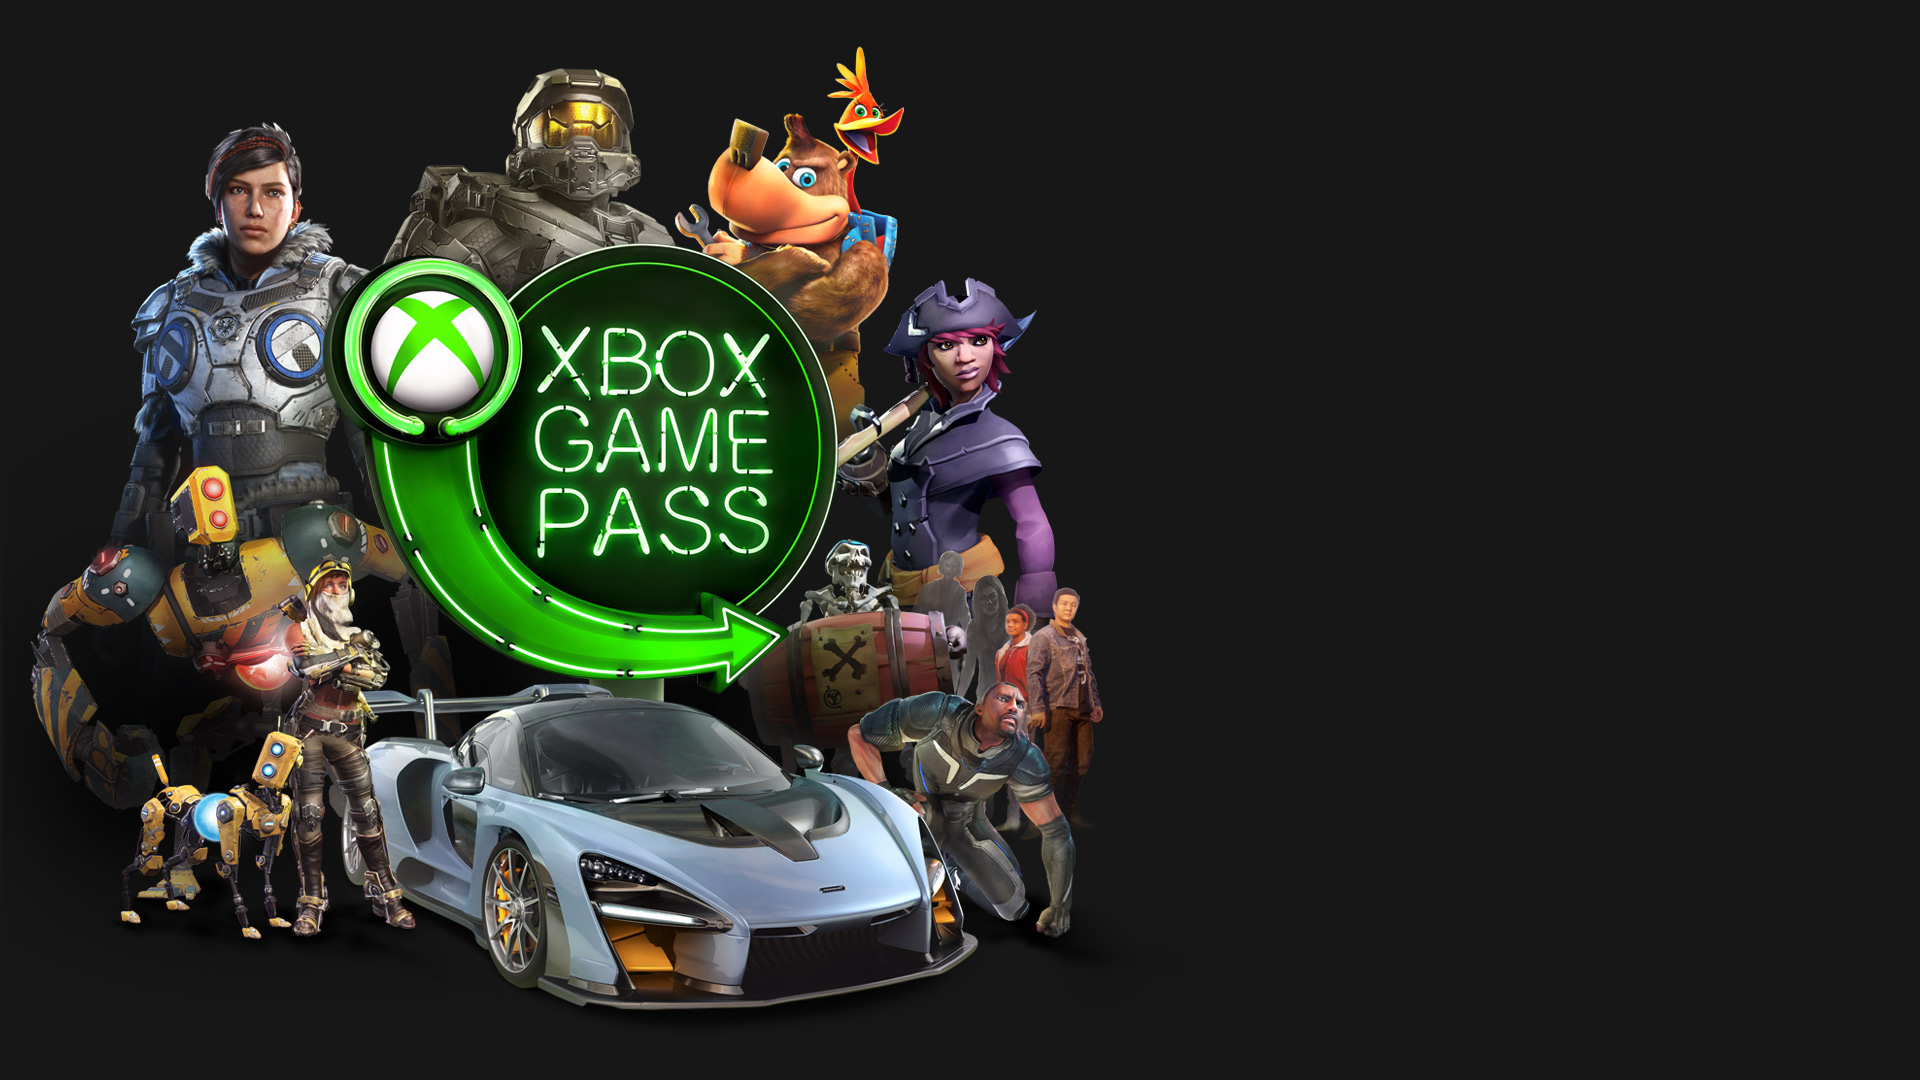 A variety of video game characters surrounding the Xbox Game Pass logo in green neon